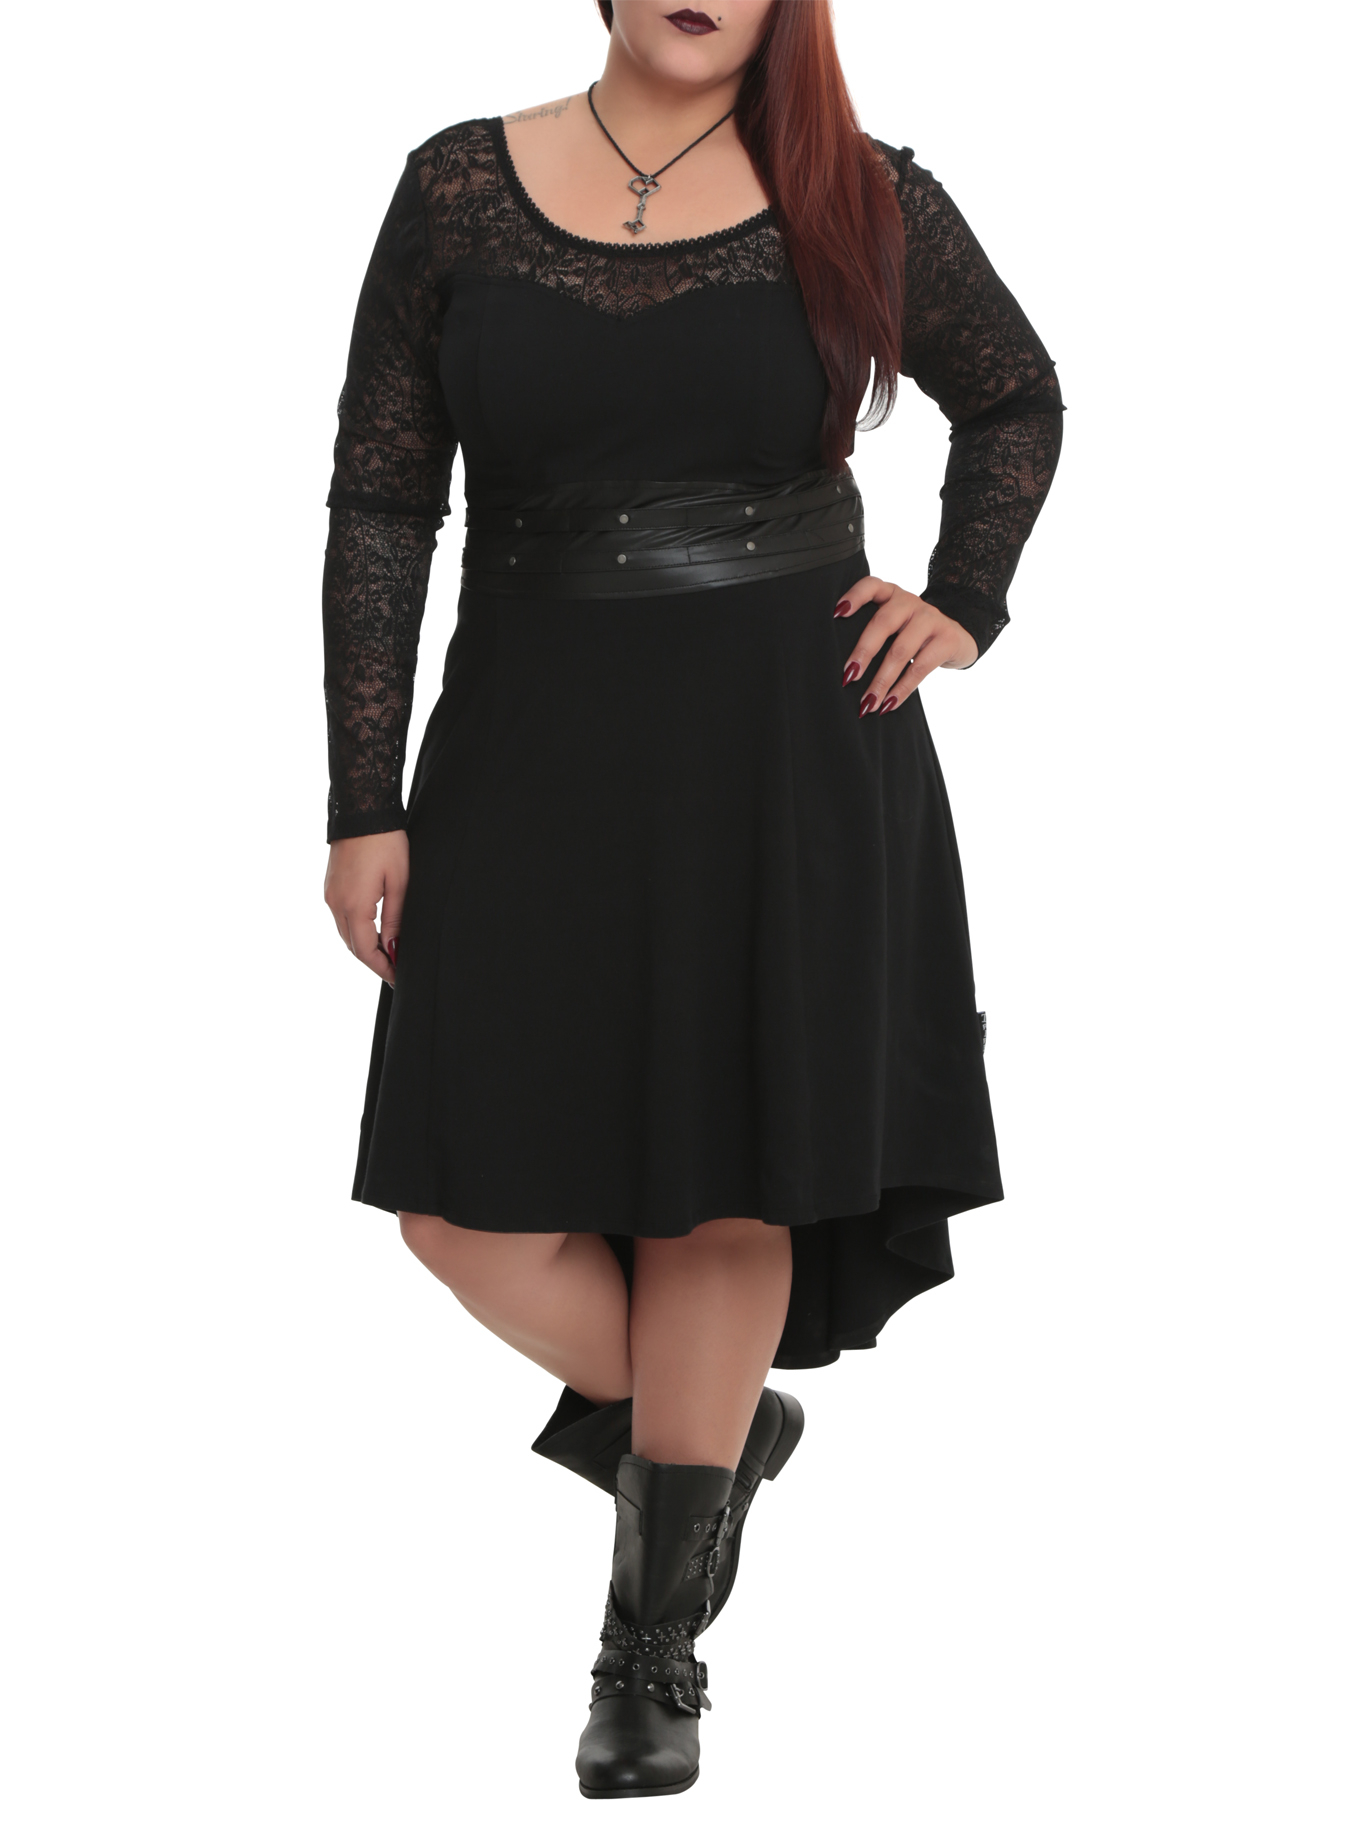 Are you looking for plus size lace dresses online? archivesnapug.cf offers the latest high quality plus size white lace dresses, plus size black lace dresses, plus size lace dresses with sleeves and more at great prices. Free shipping world wide.